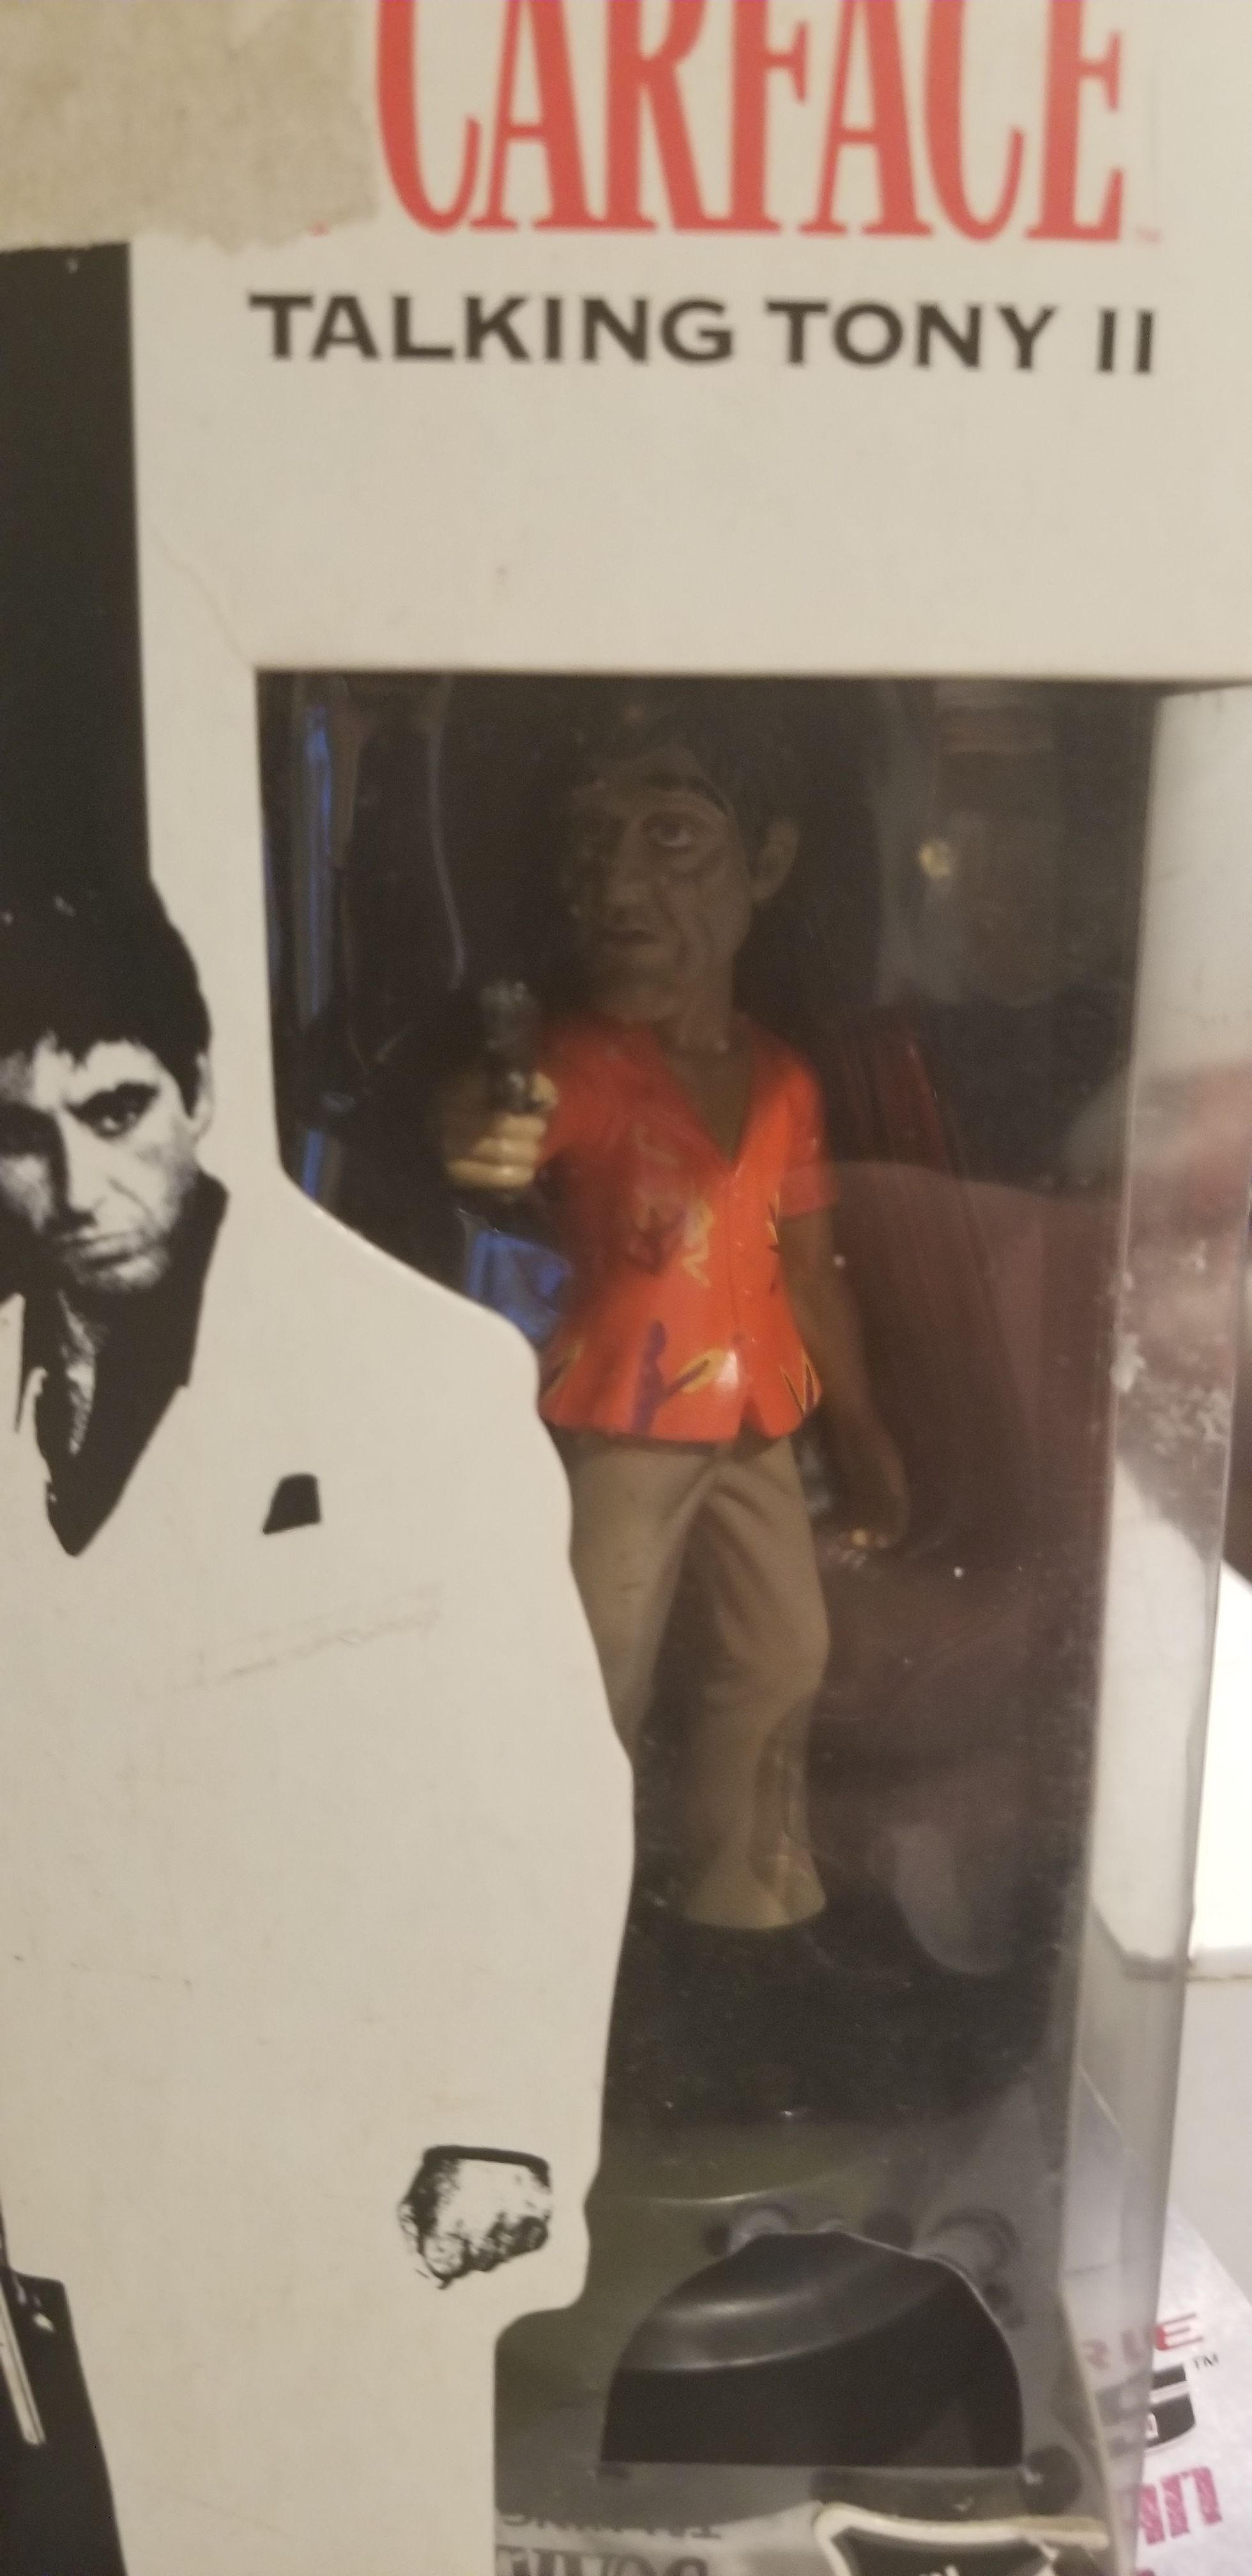 Scarface Bobblehead front image (front cover)